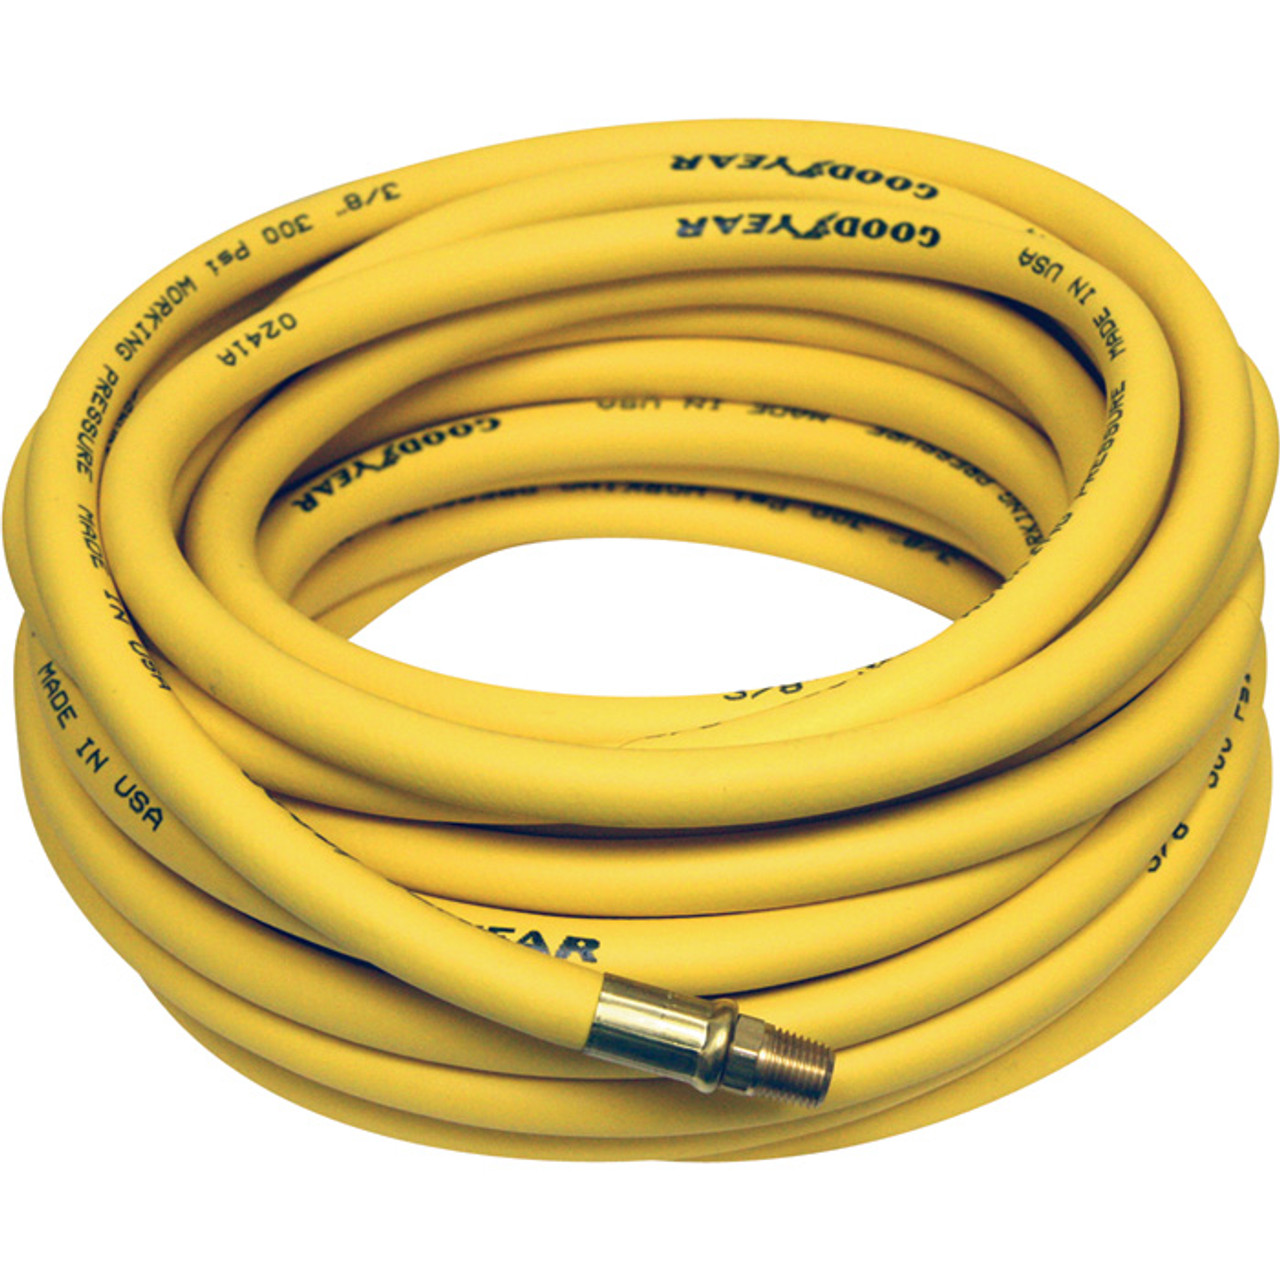 Goodyear Rubber Hose  sc 1 st  Jag10 Tools & Goodyear Rubber Hose - Jag10 Tools and Supplies